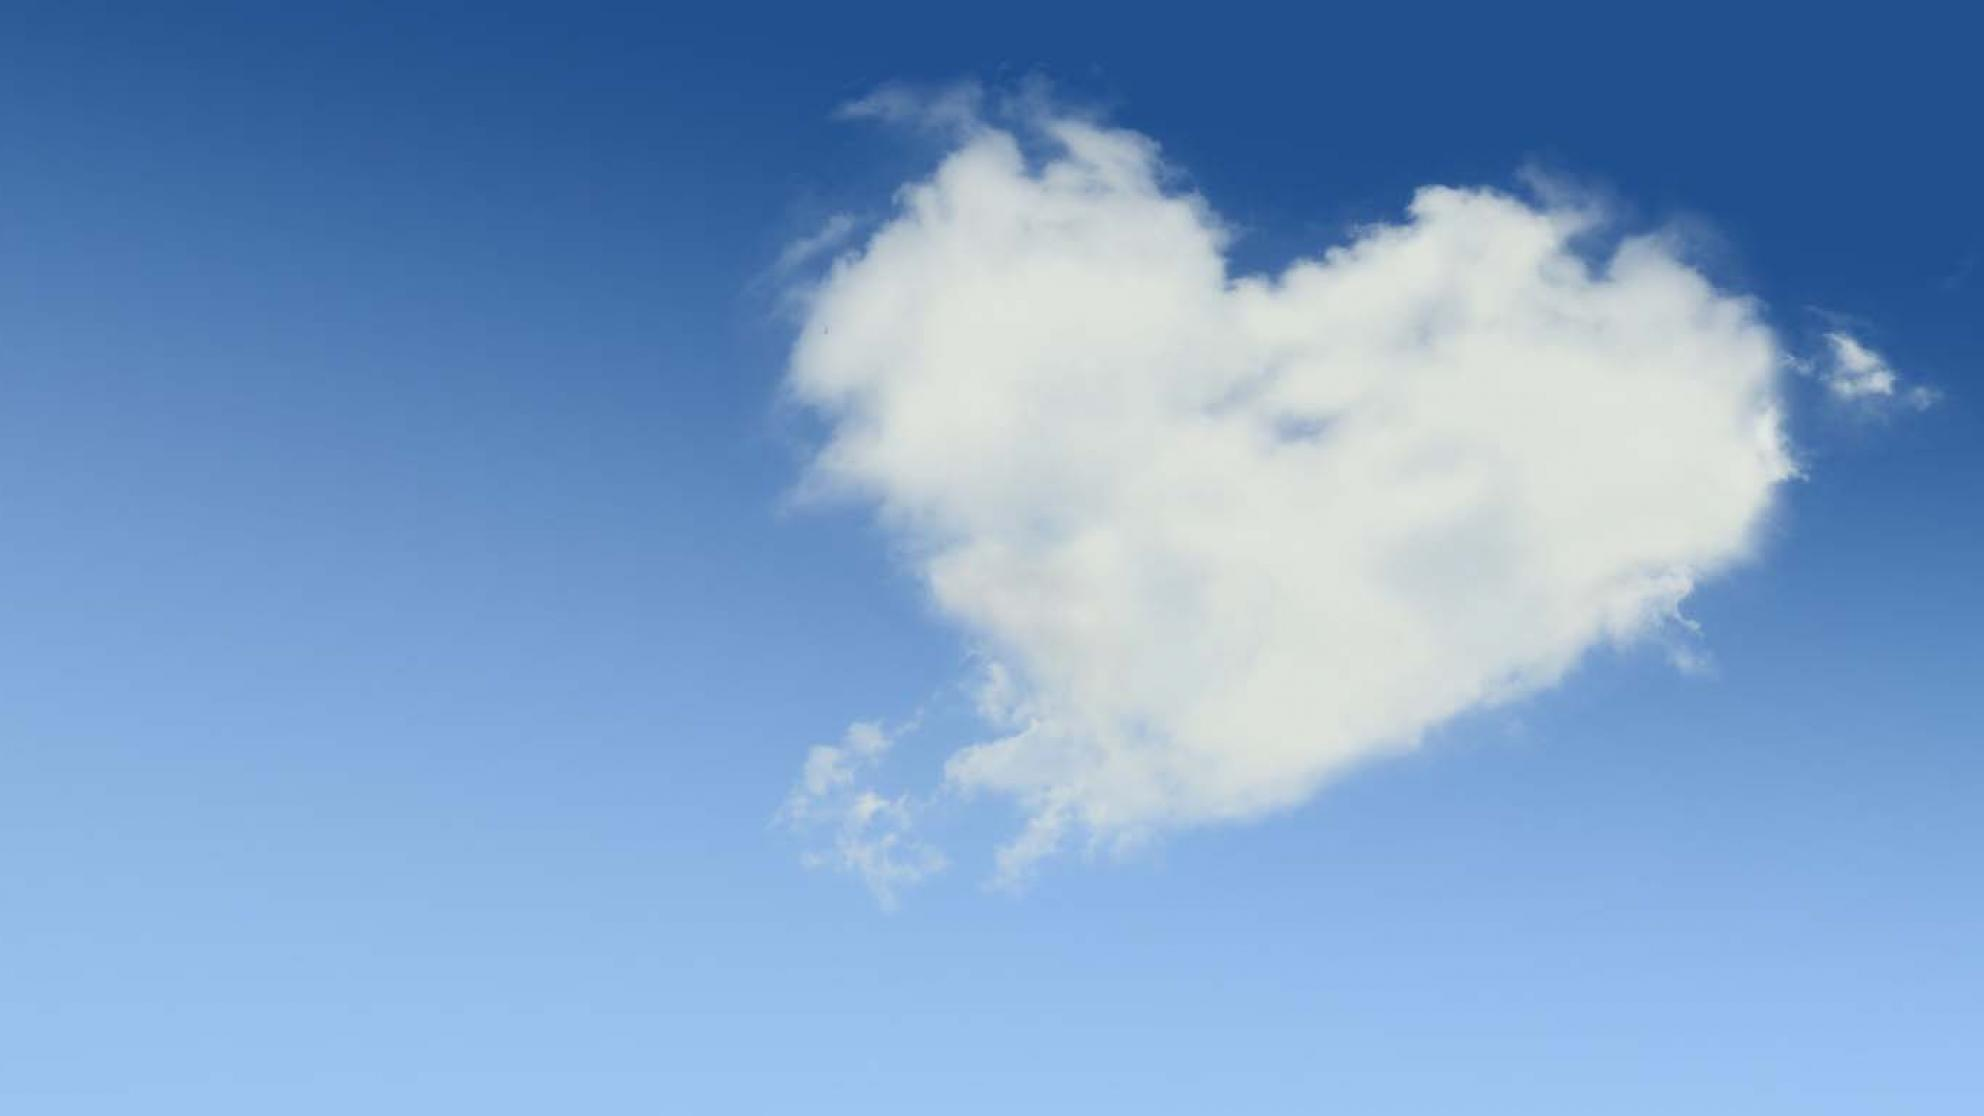 A heart-shaped cloud against a blue sky